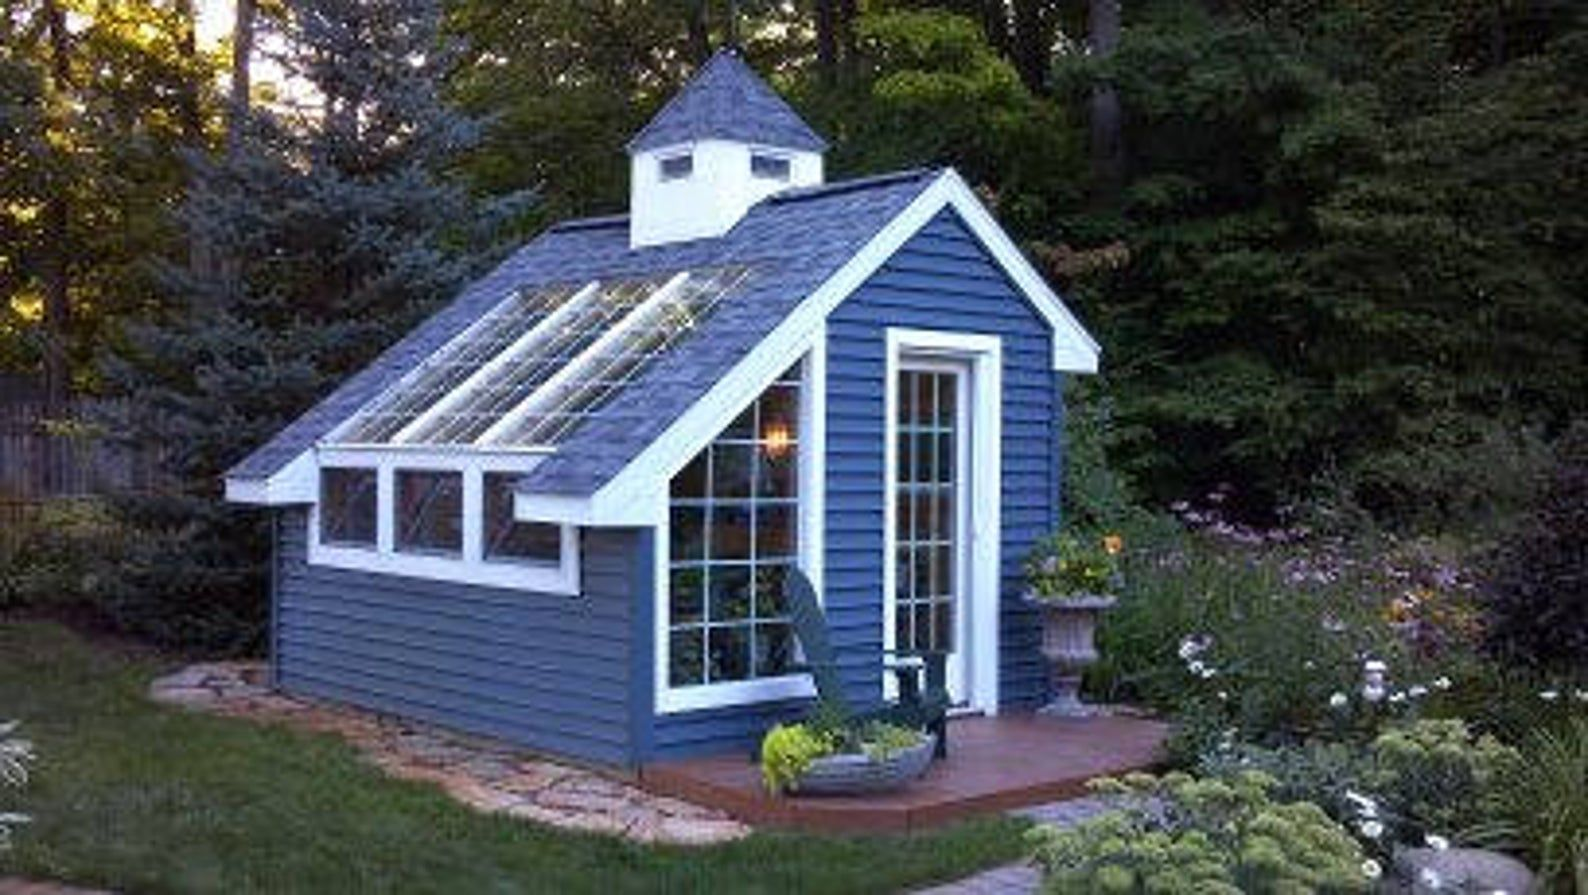 Greenhouse Shed Building Project Plans - size 10 x 12 in ...